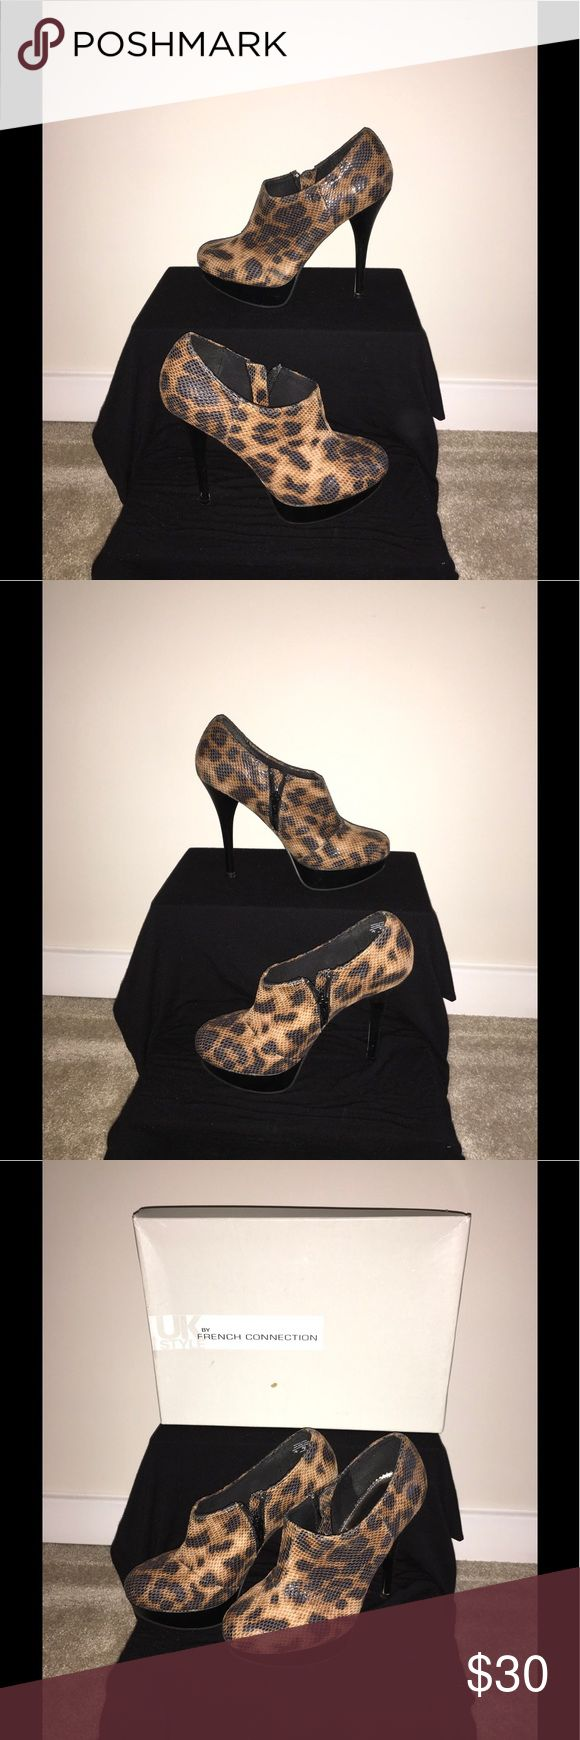 French Connection Booties Women's 7...... Please don't be fooled by the fakes on POSHMARK. All of our products are GUARANTEED 100% AUTHENTIC, so buy with CONFIDENCE....... CHECK OUT OUR OTHER ITEMS FOR SALE... French Connection Shoes Ankle Boots & Booties